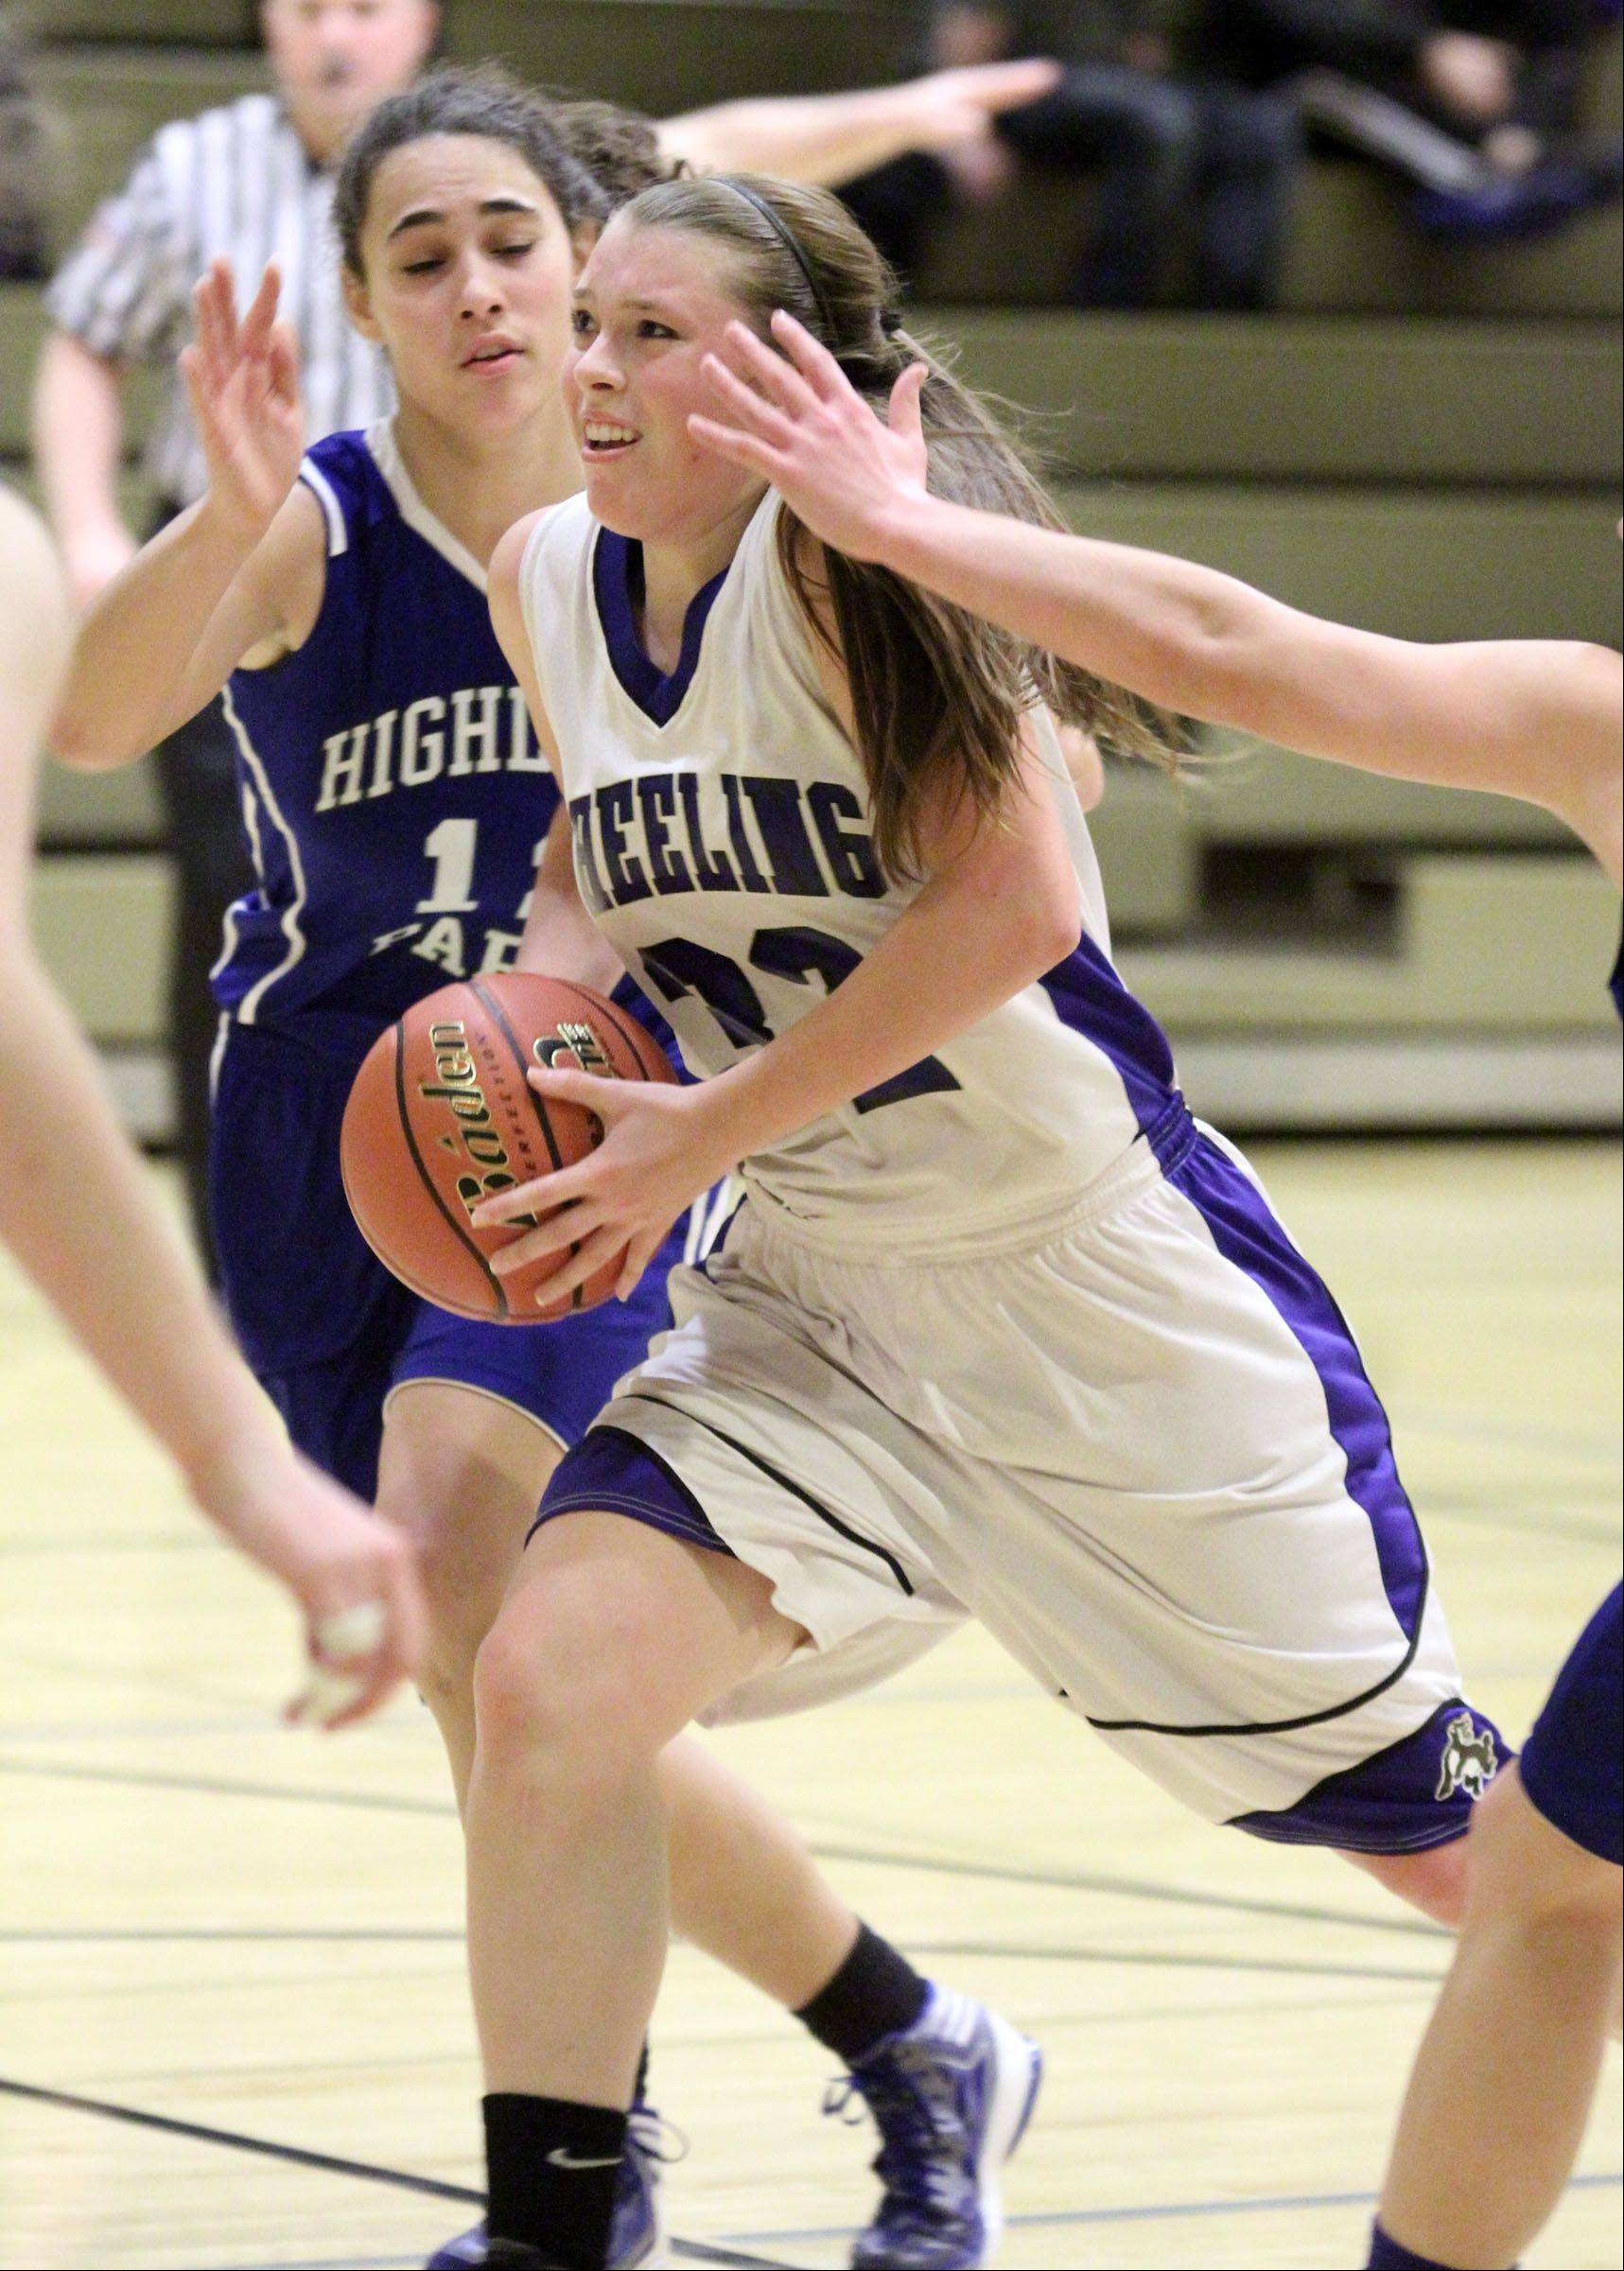 Wheeling's Brie Majkowski drives the lane against Highland Park.